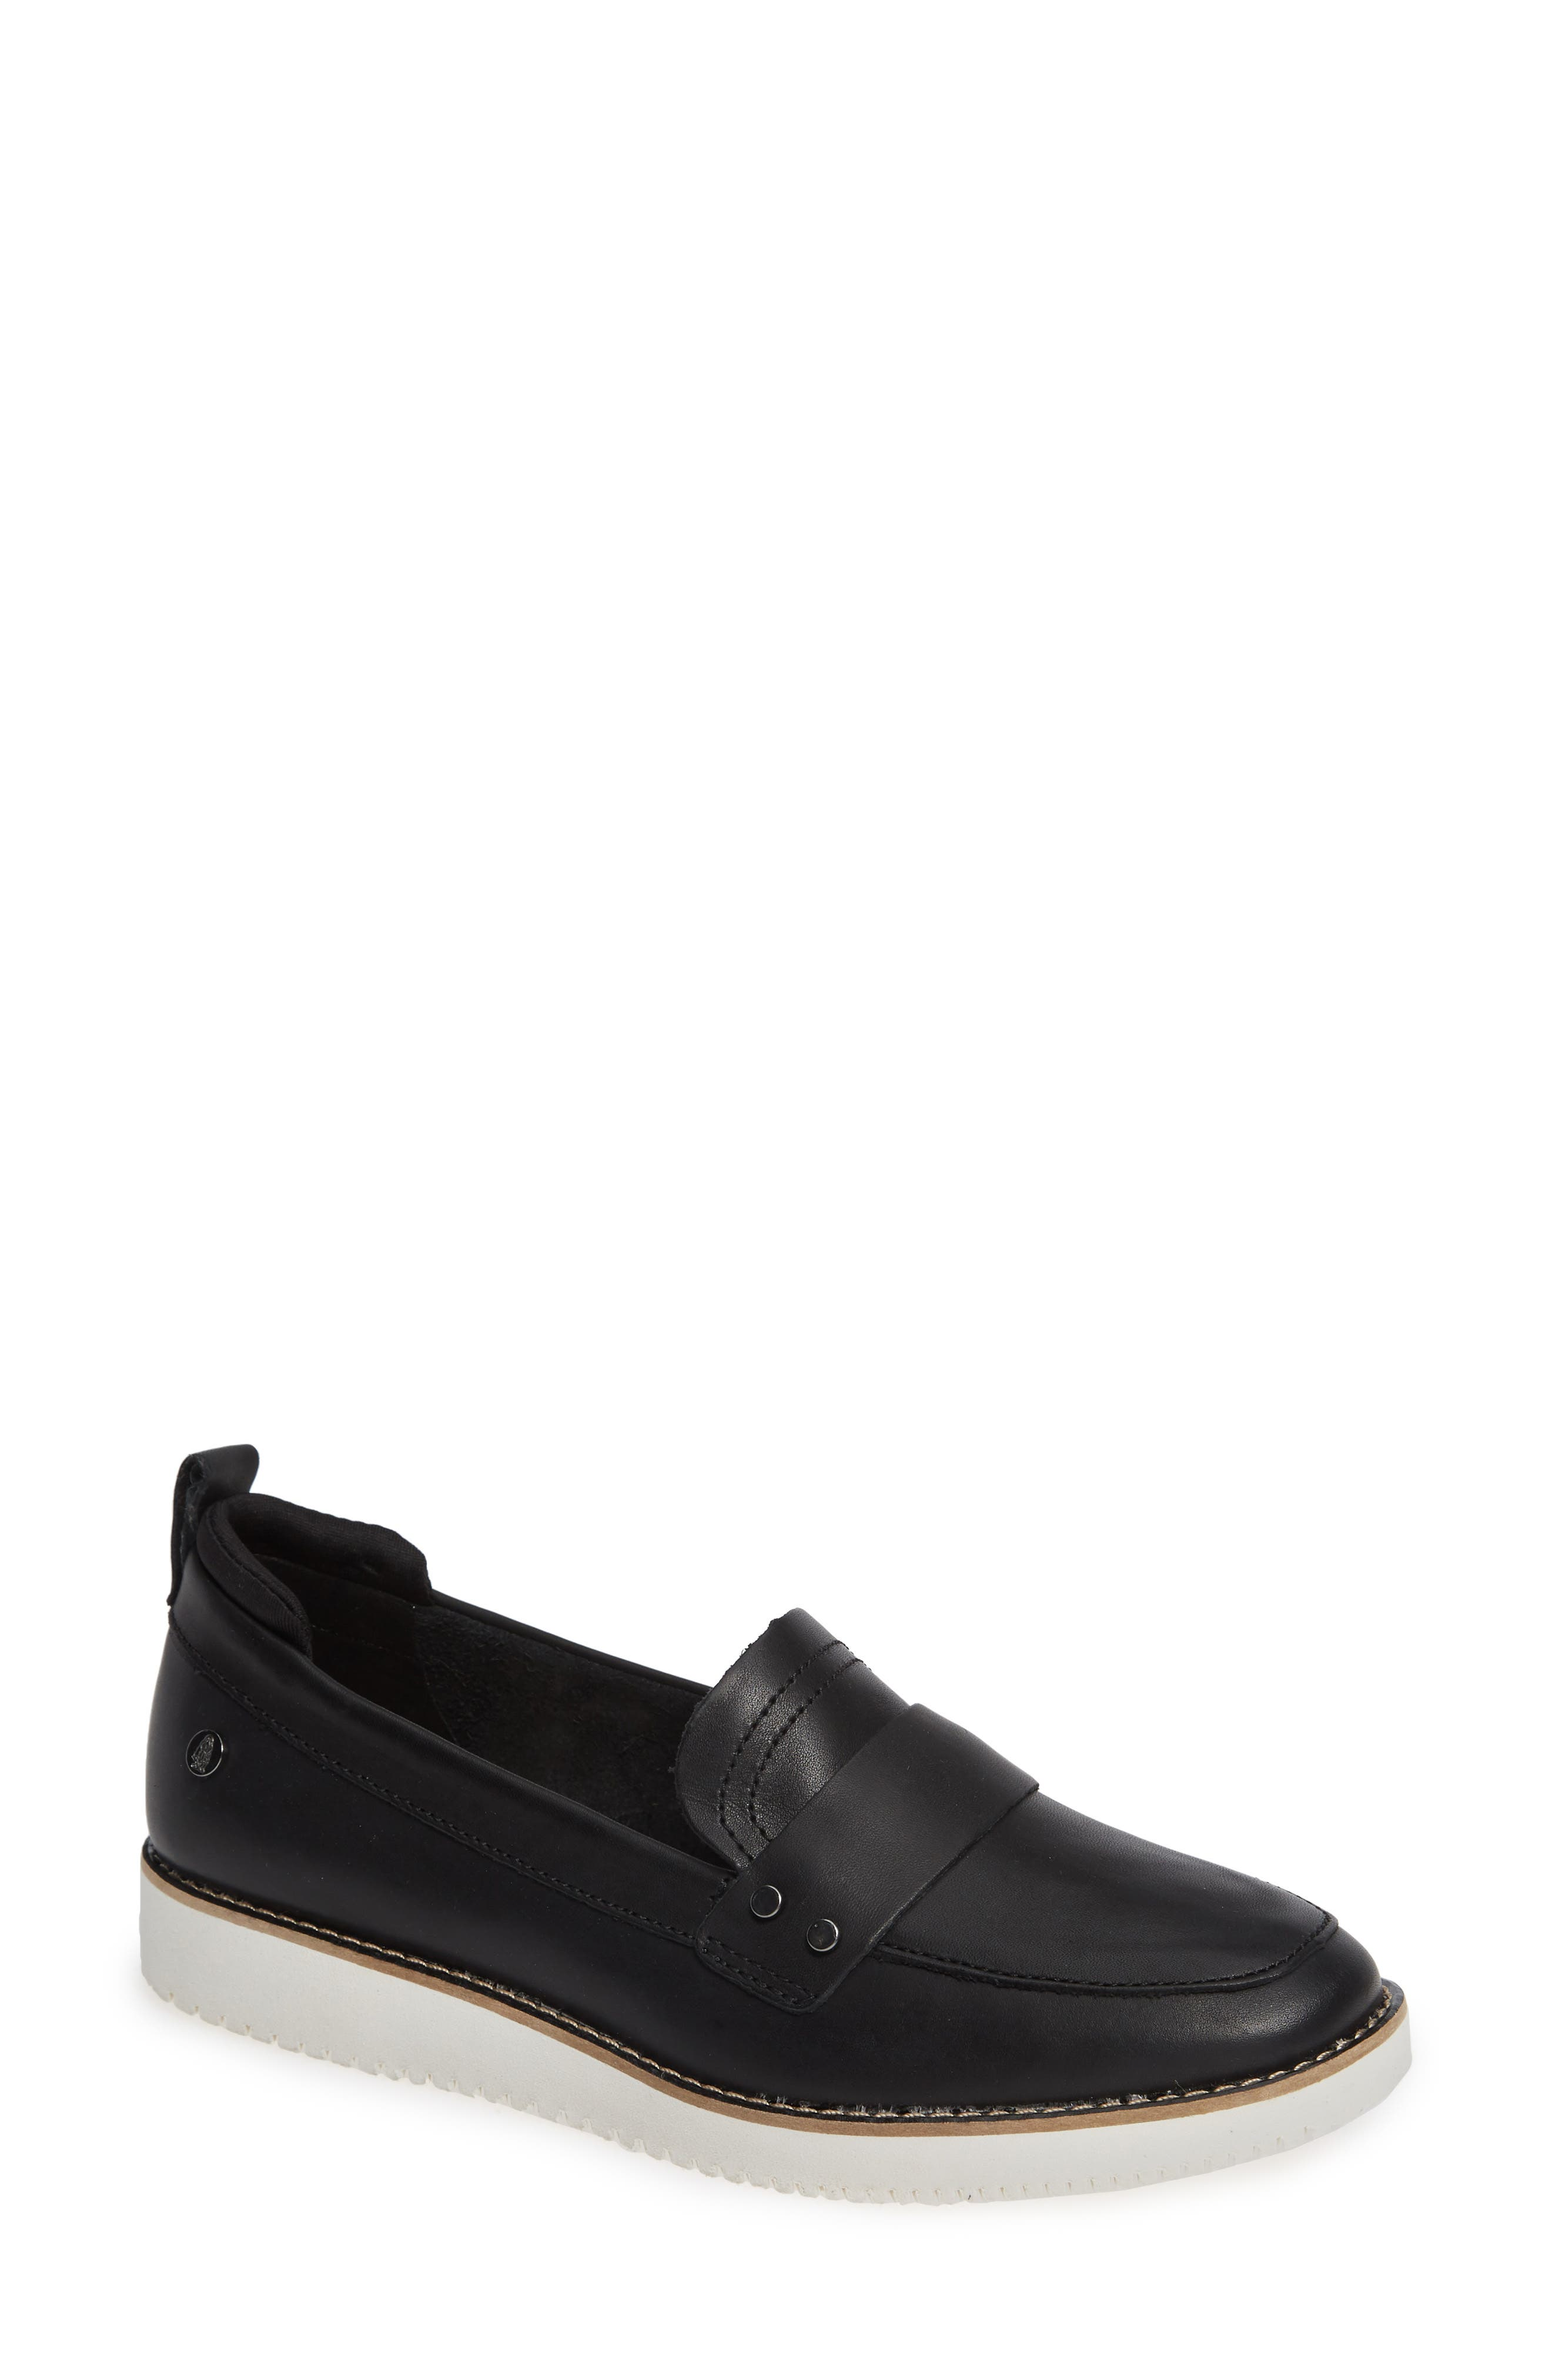 Chowchow Loafer,                             Main thumbnail 1, color,                             Black Leather